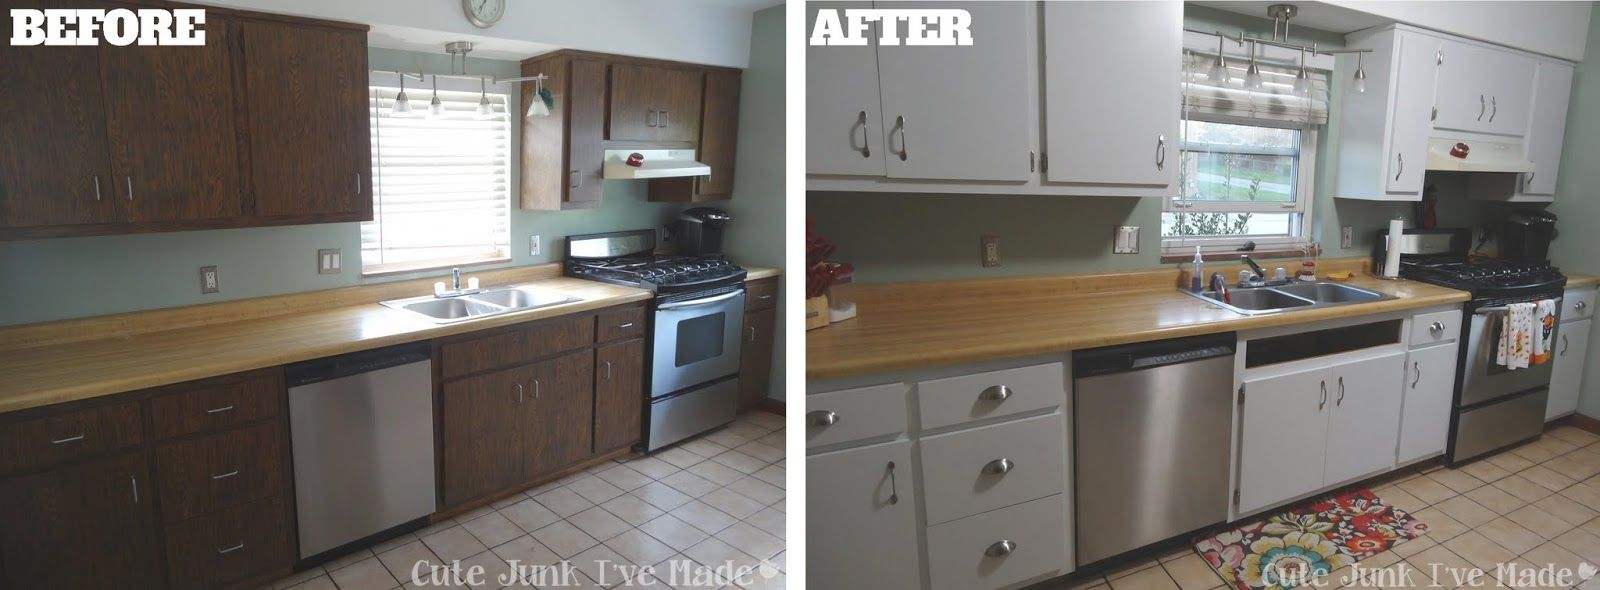 How to paint laminate cabinets before after need to for Painting wood cabinets white before and after